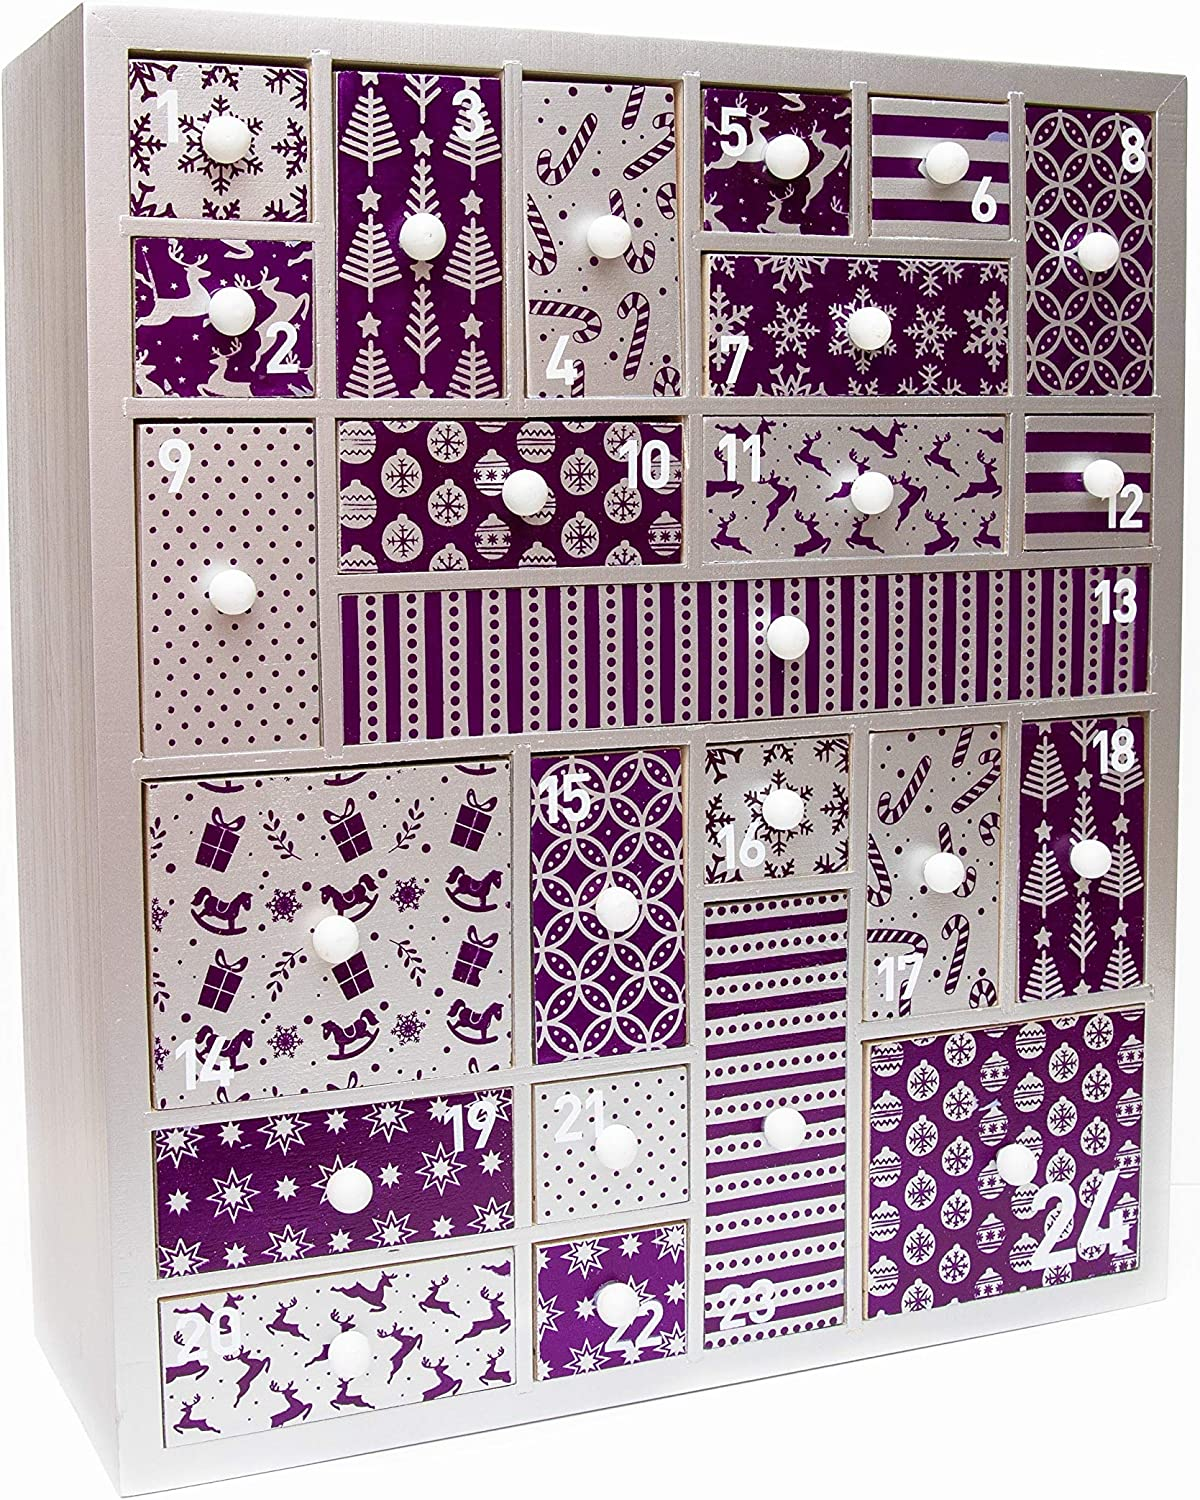 Purple Jewel Wooden Advent Calendar for Christmas 2019 - Advent Calendar for Girls, Women, Teens, Grandparents, Baby. Refillable advent suitable for beauty product, makeup, gifts, accessories